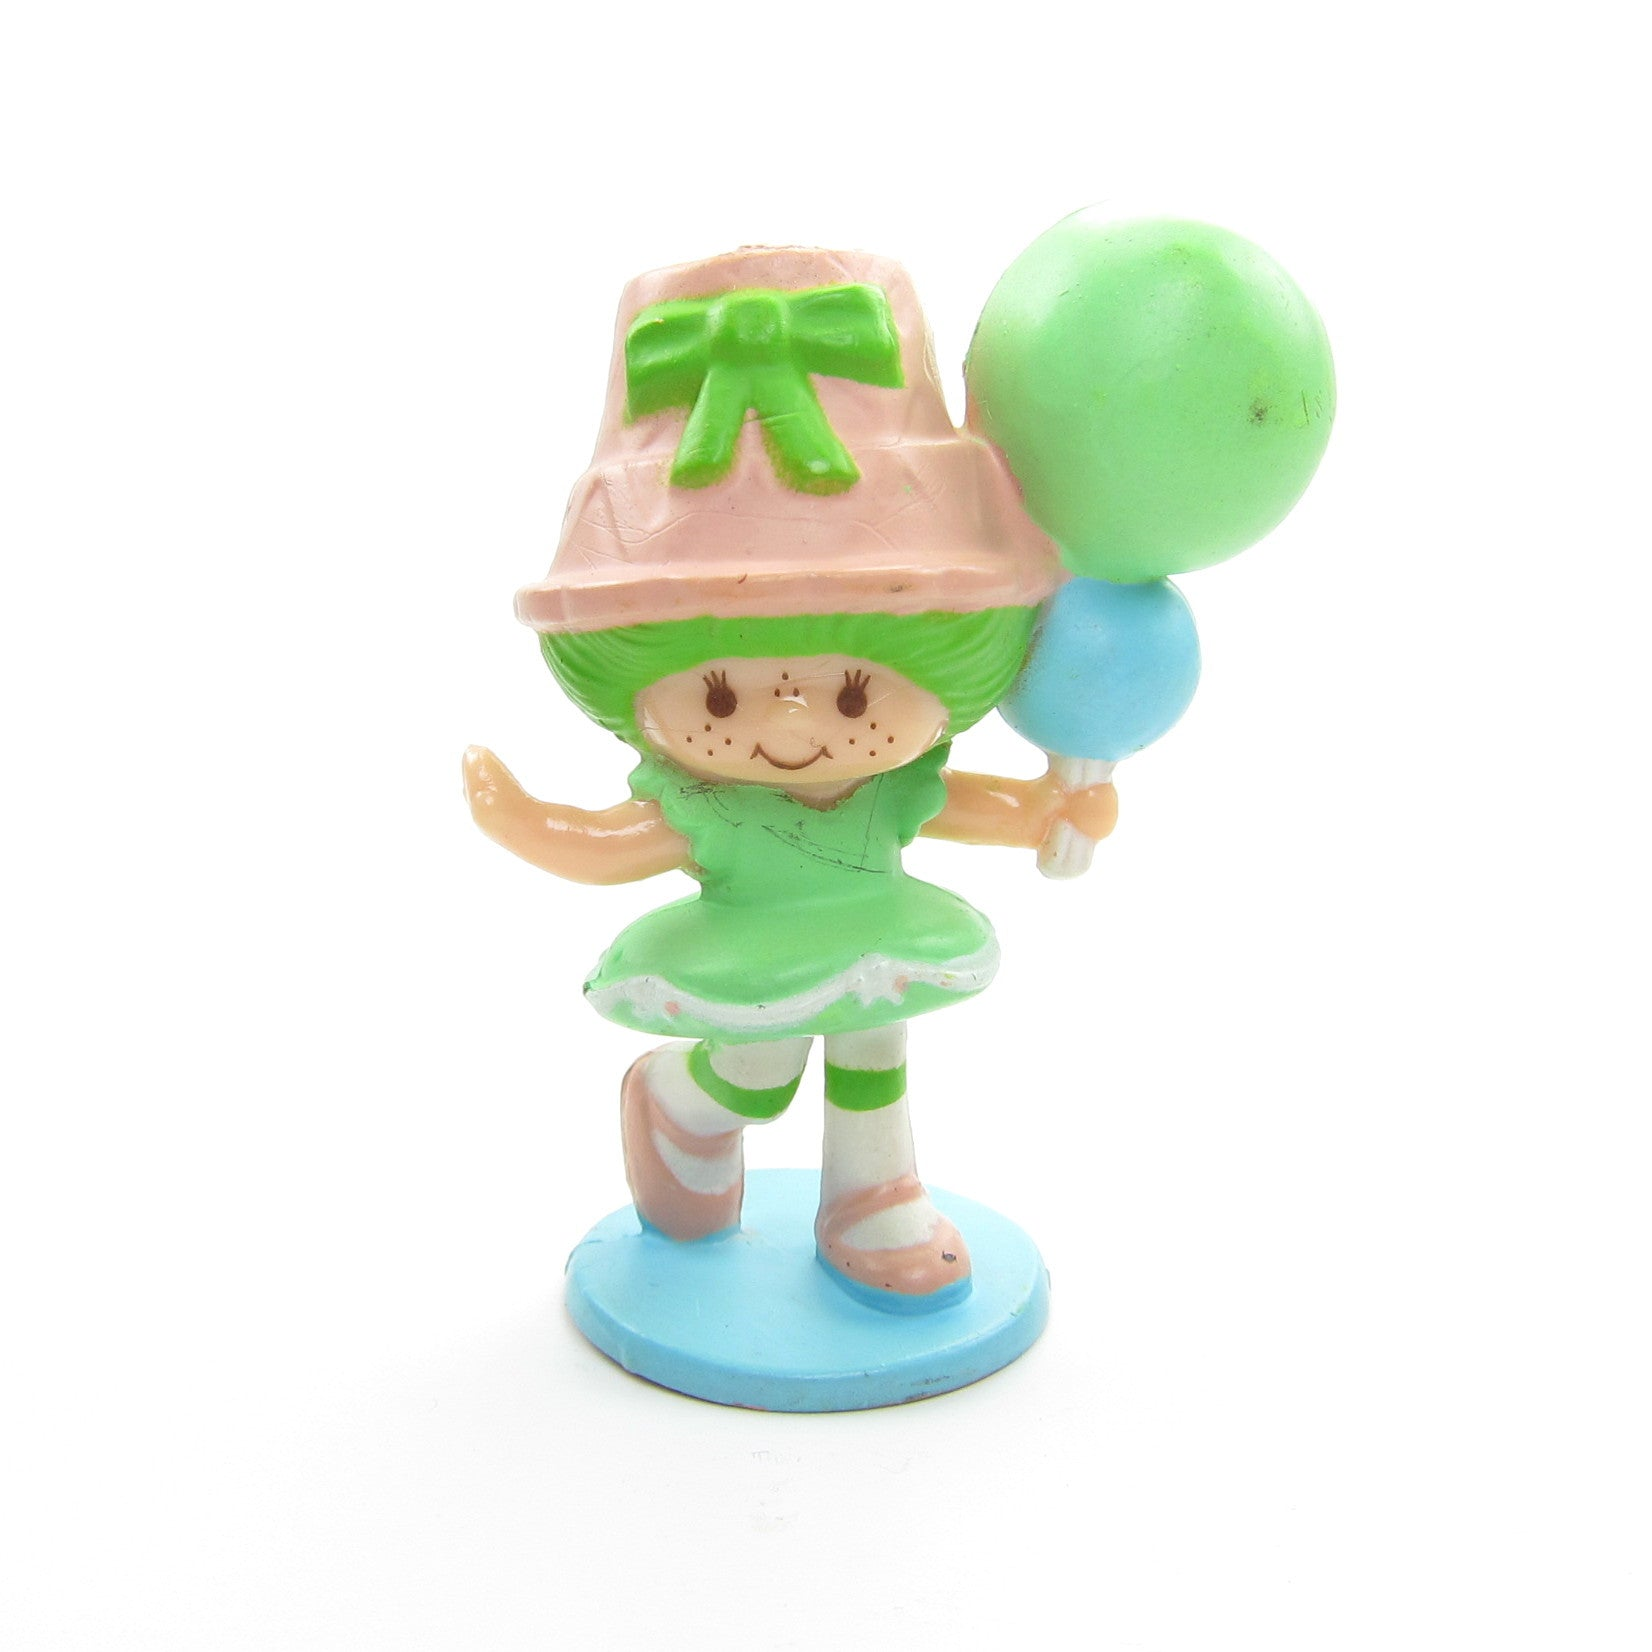 Lime Chiffon with Balloons miniature figurine